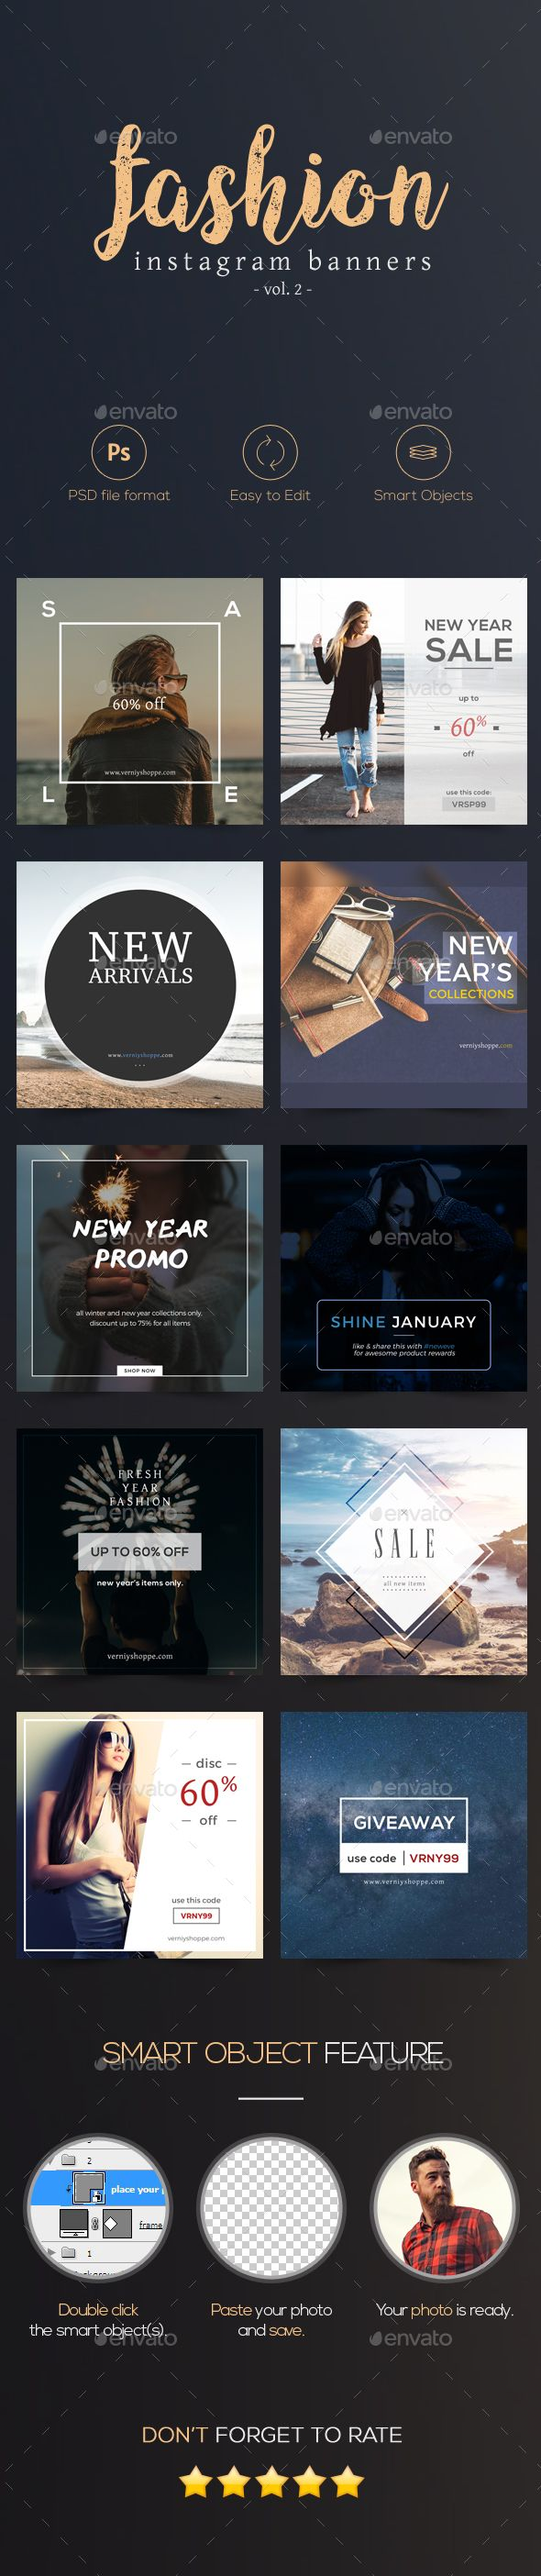 10 Minimalist and Simple Instagram Fashion Banners Template PSD #ads